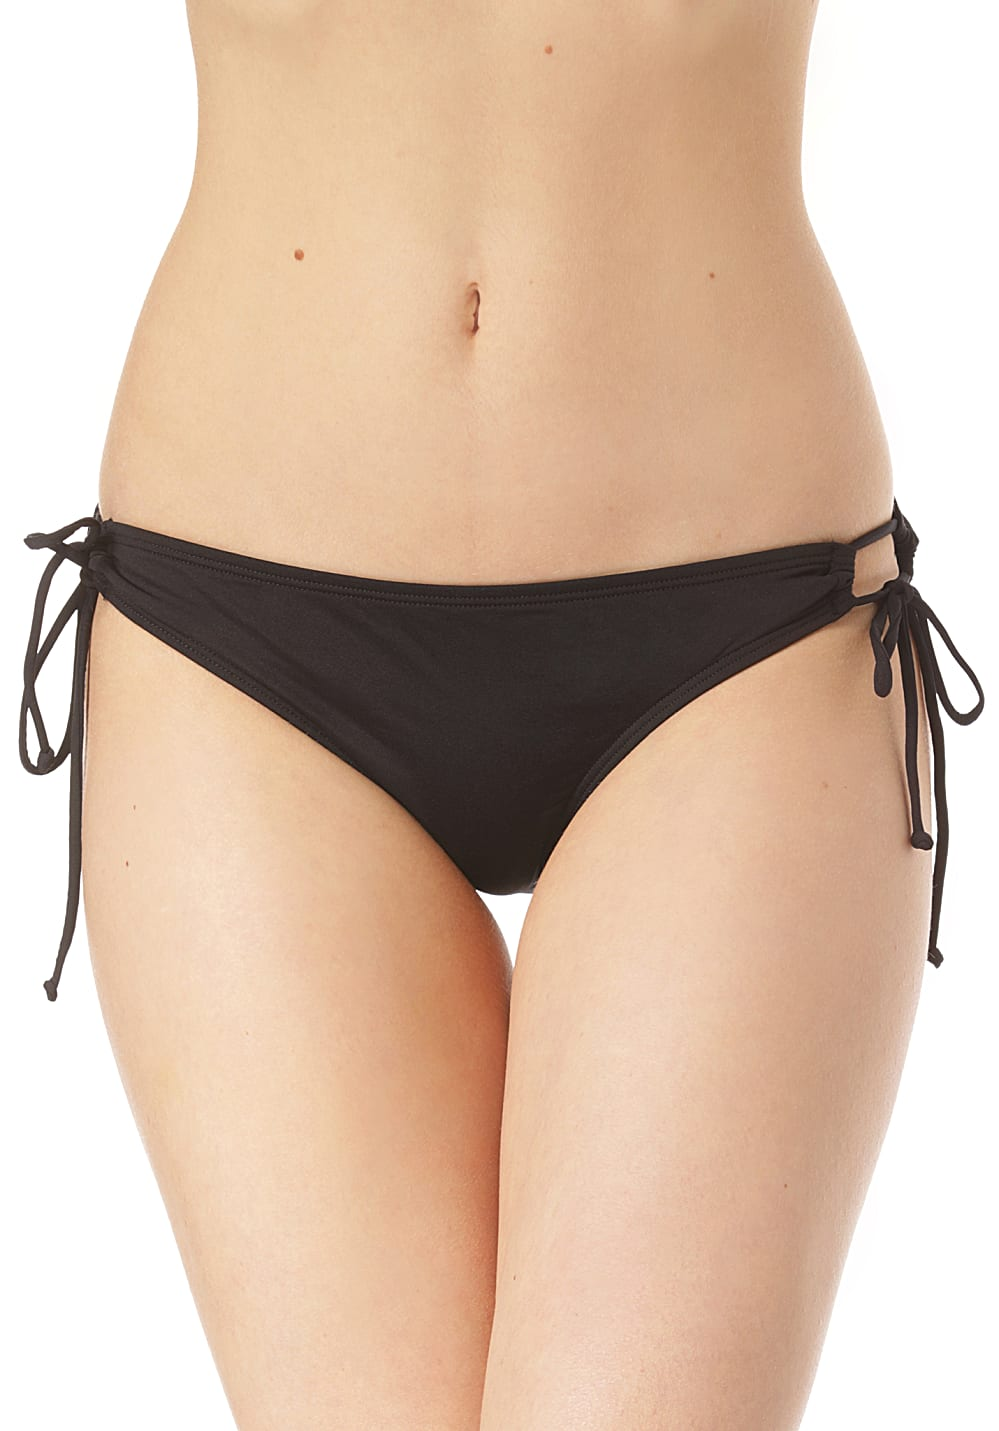 Bademode - BILLABONG S.S Low Rider Bikini Hose für Damen Schwarz  - Onlineshop Planet Sports